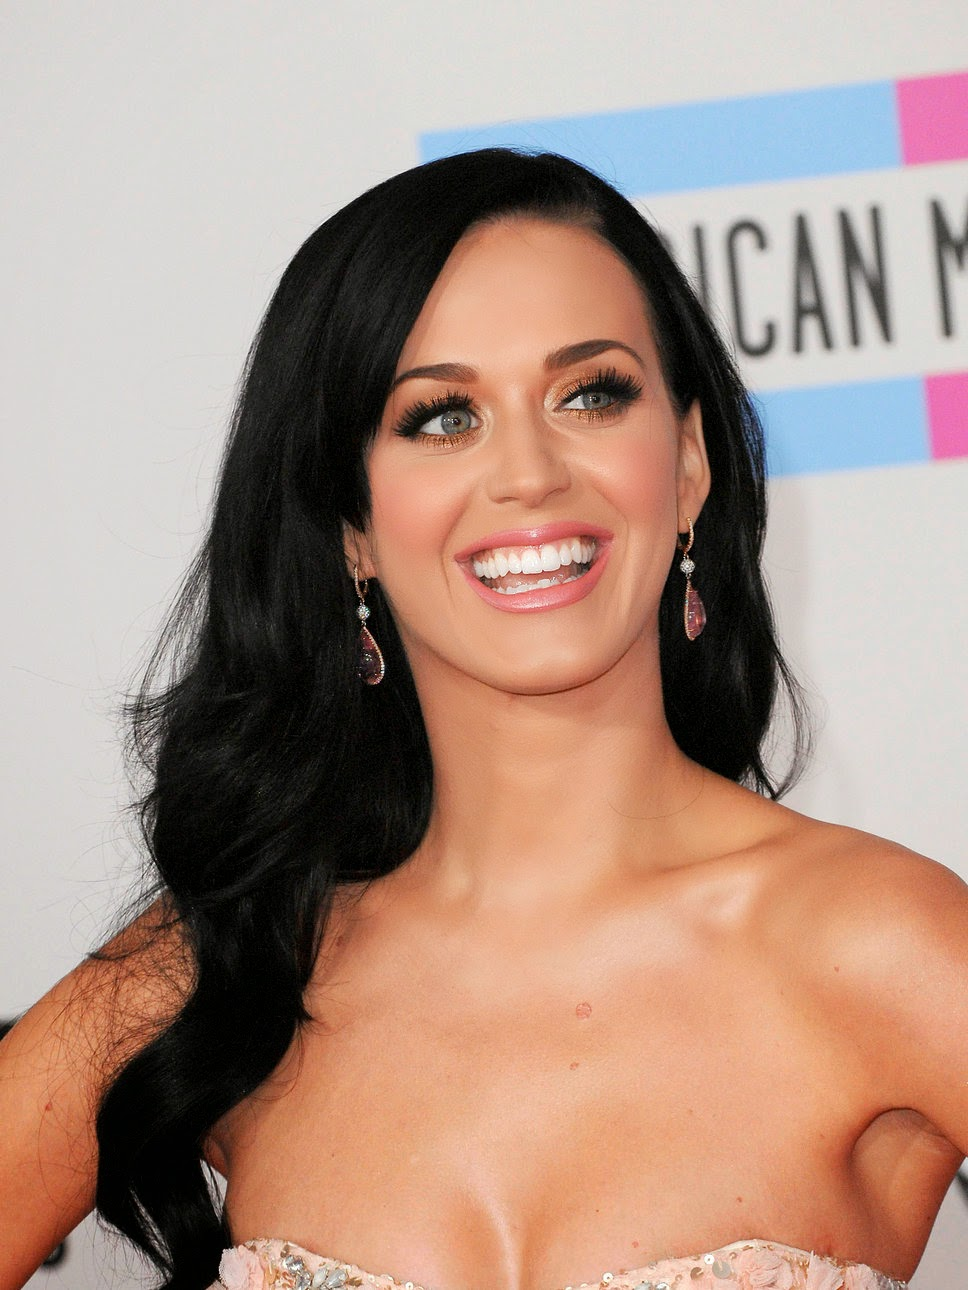 Katy Perry: Celebrity Revista: Katy Perry Pictures Leaked